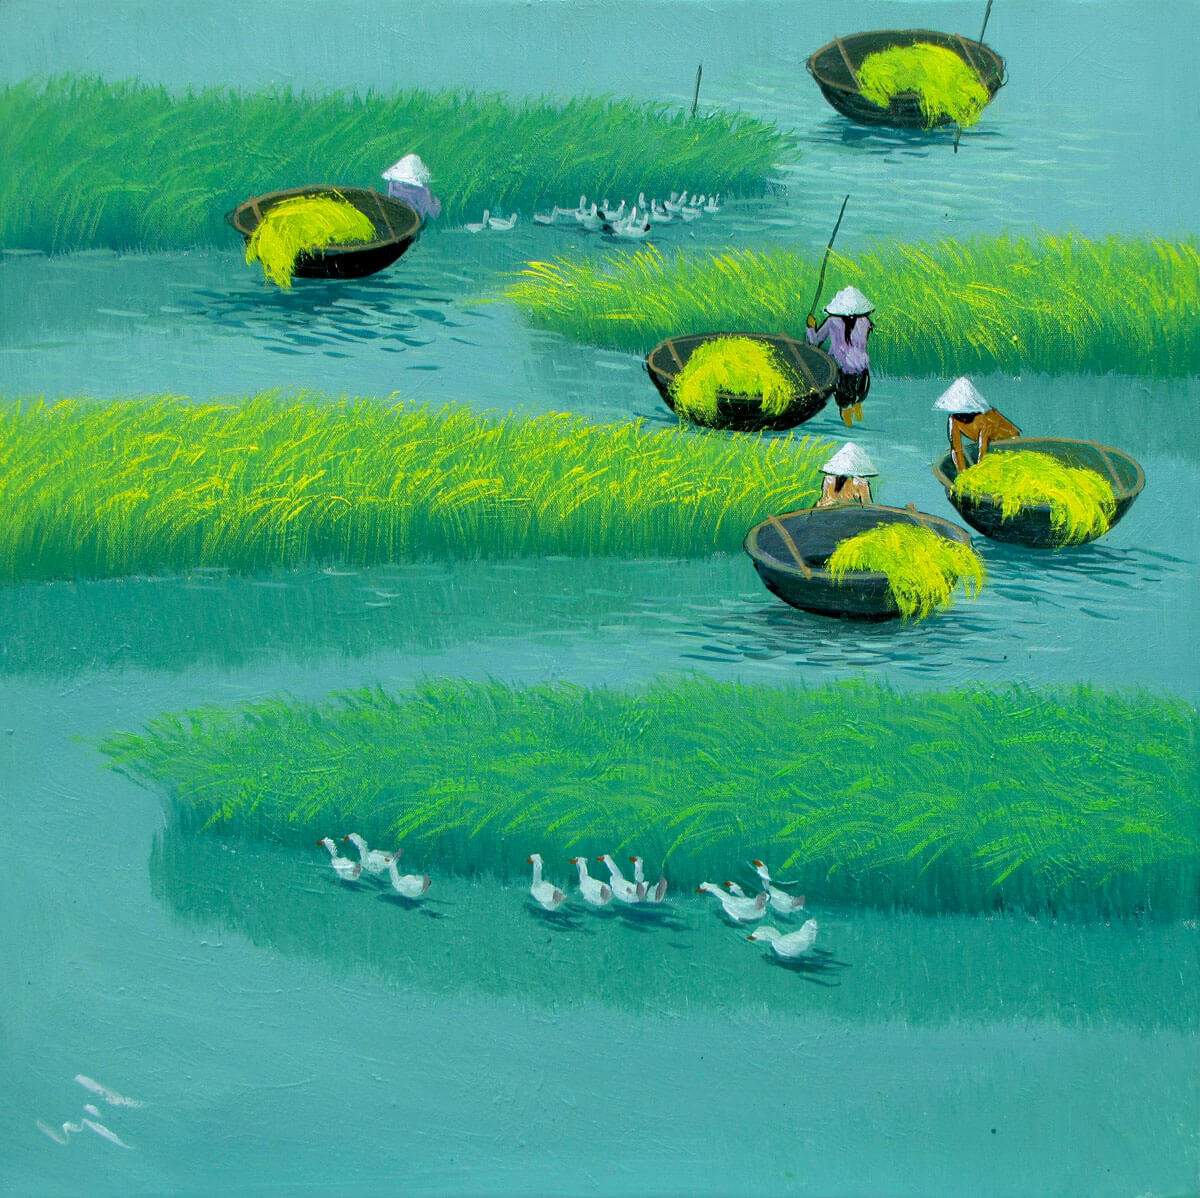 Paddy field 04-Vietnamese Painting